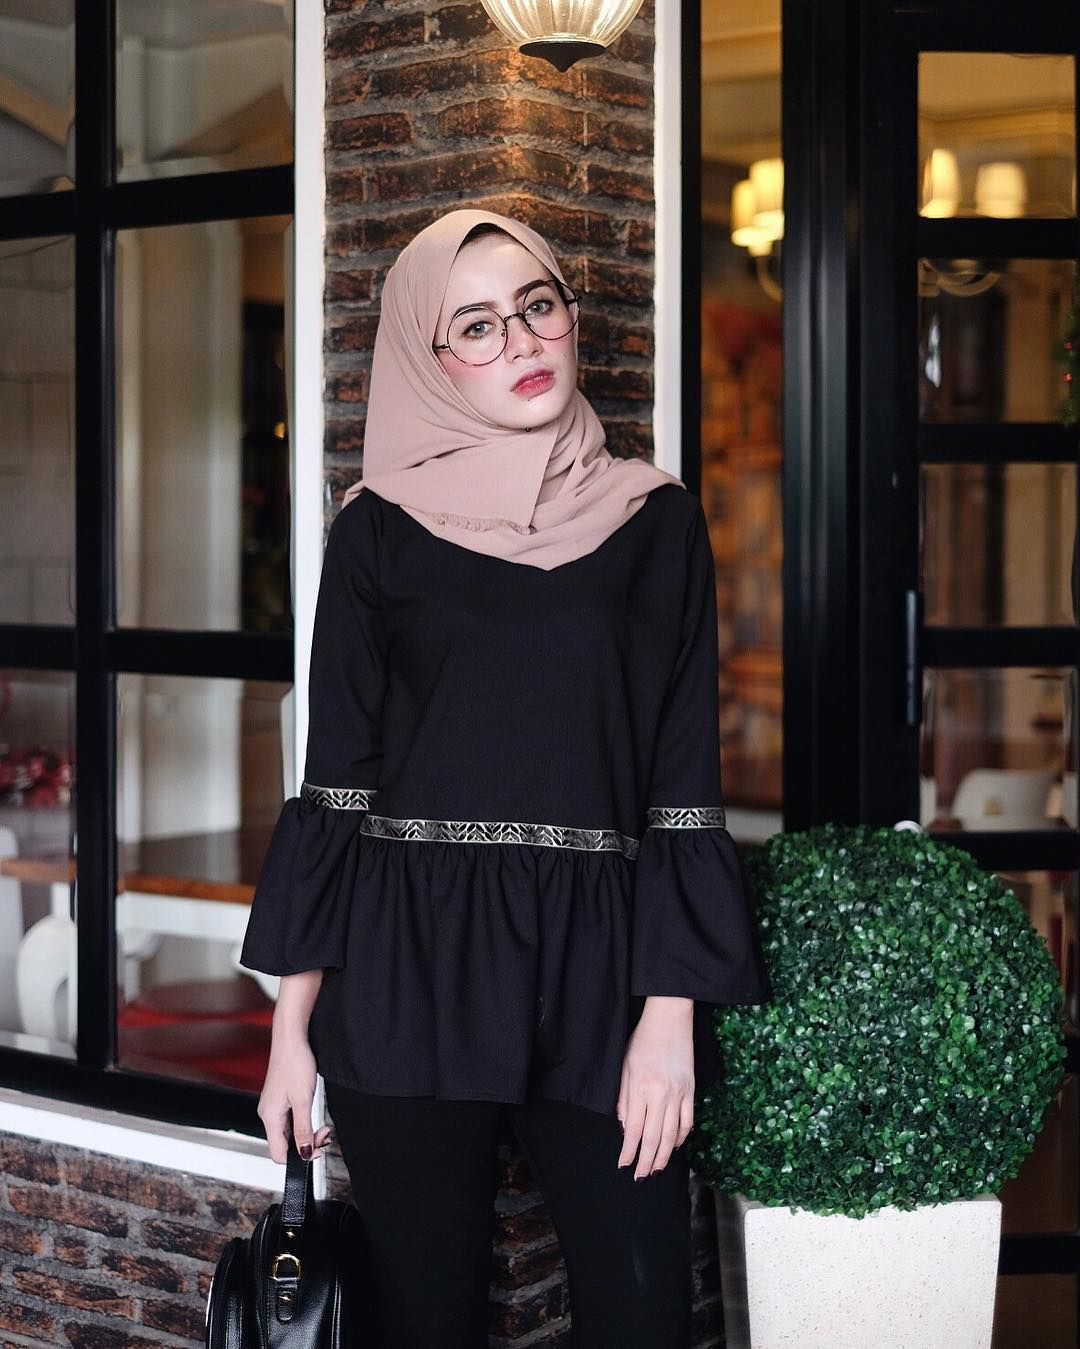 PRETTY MUSLIMAH PRETTY FACES HIJABS OF MUSLIMAHS Pinterest